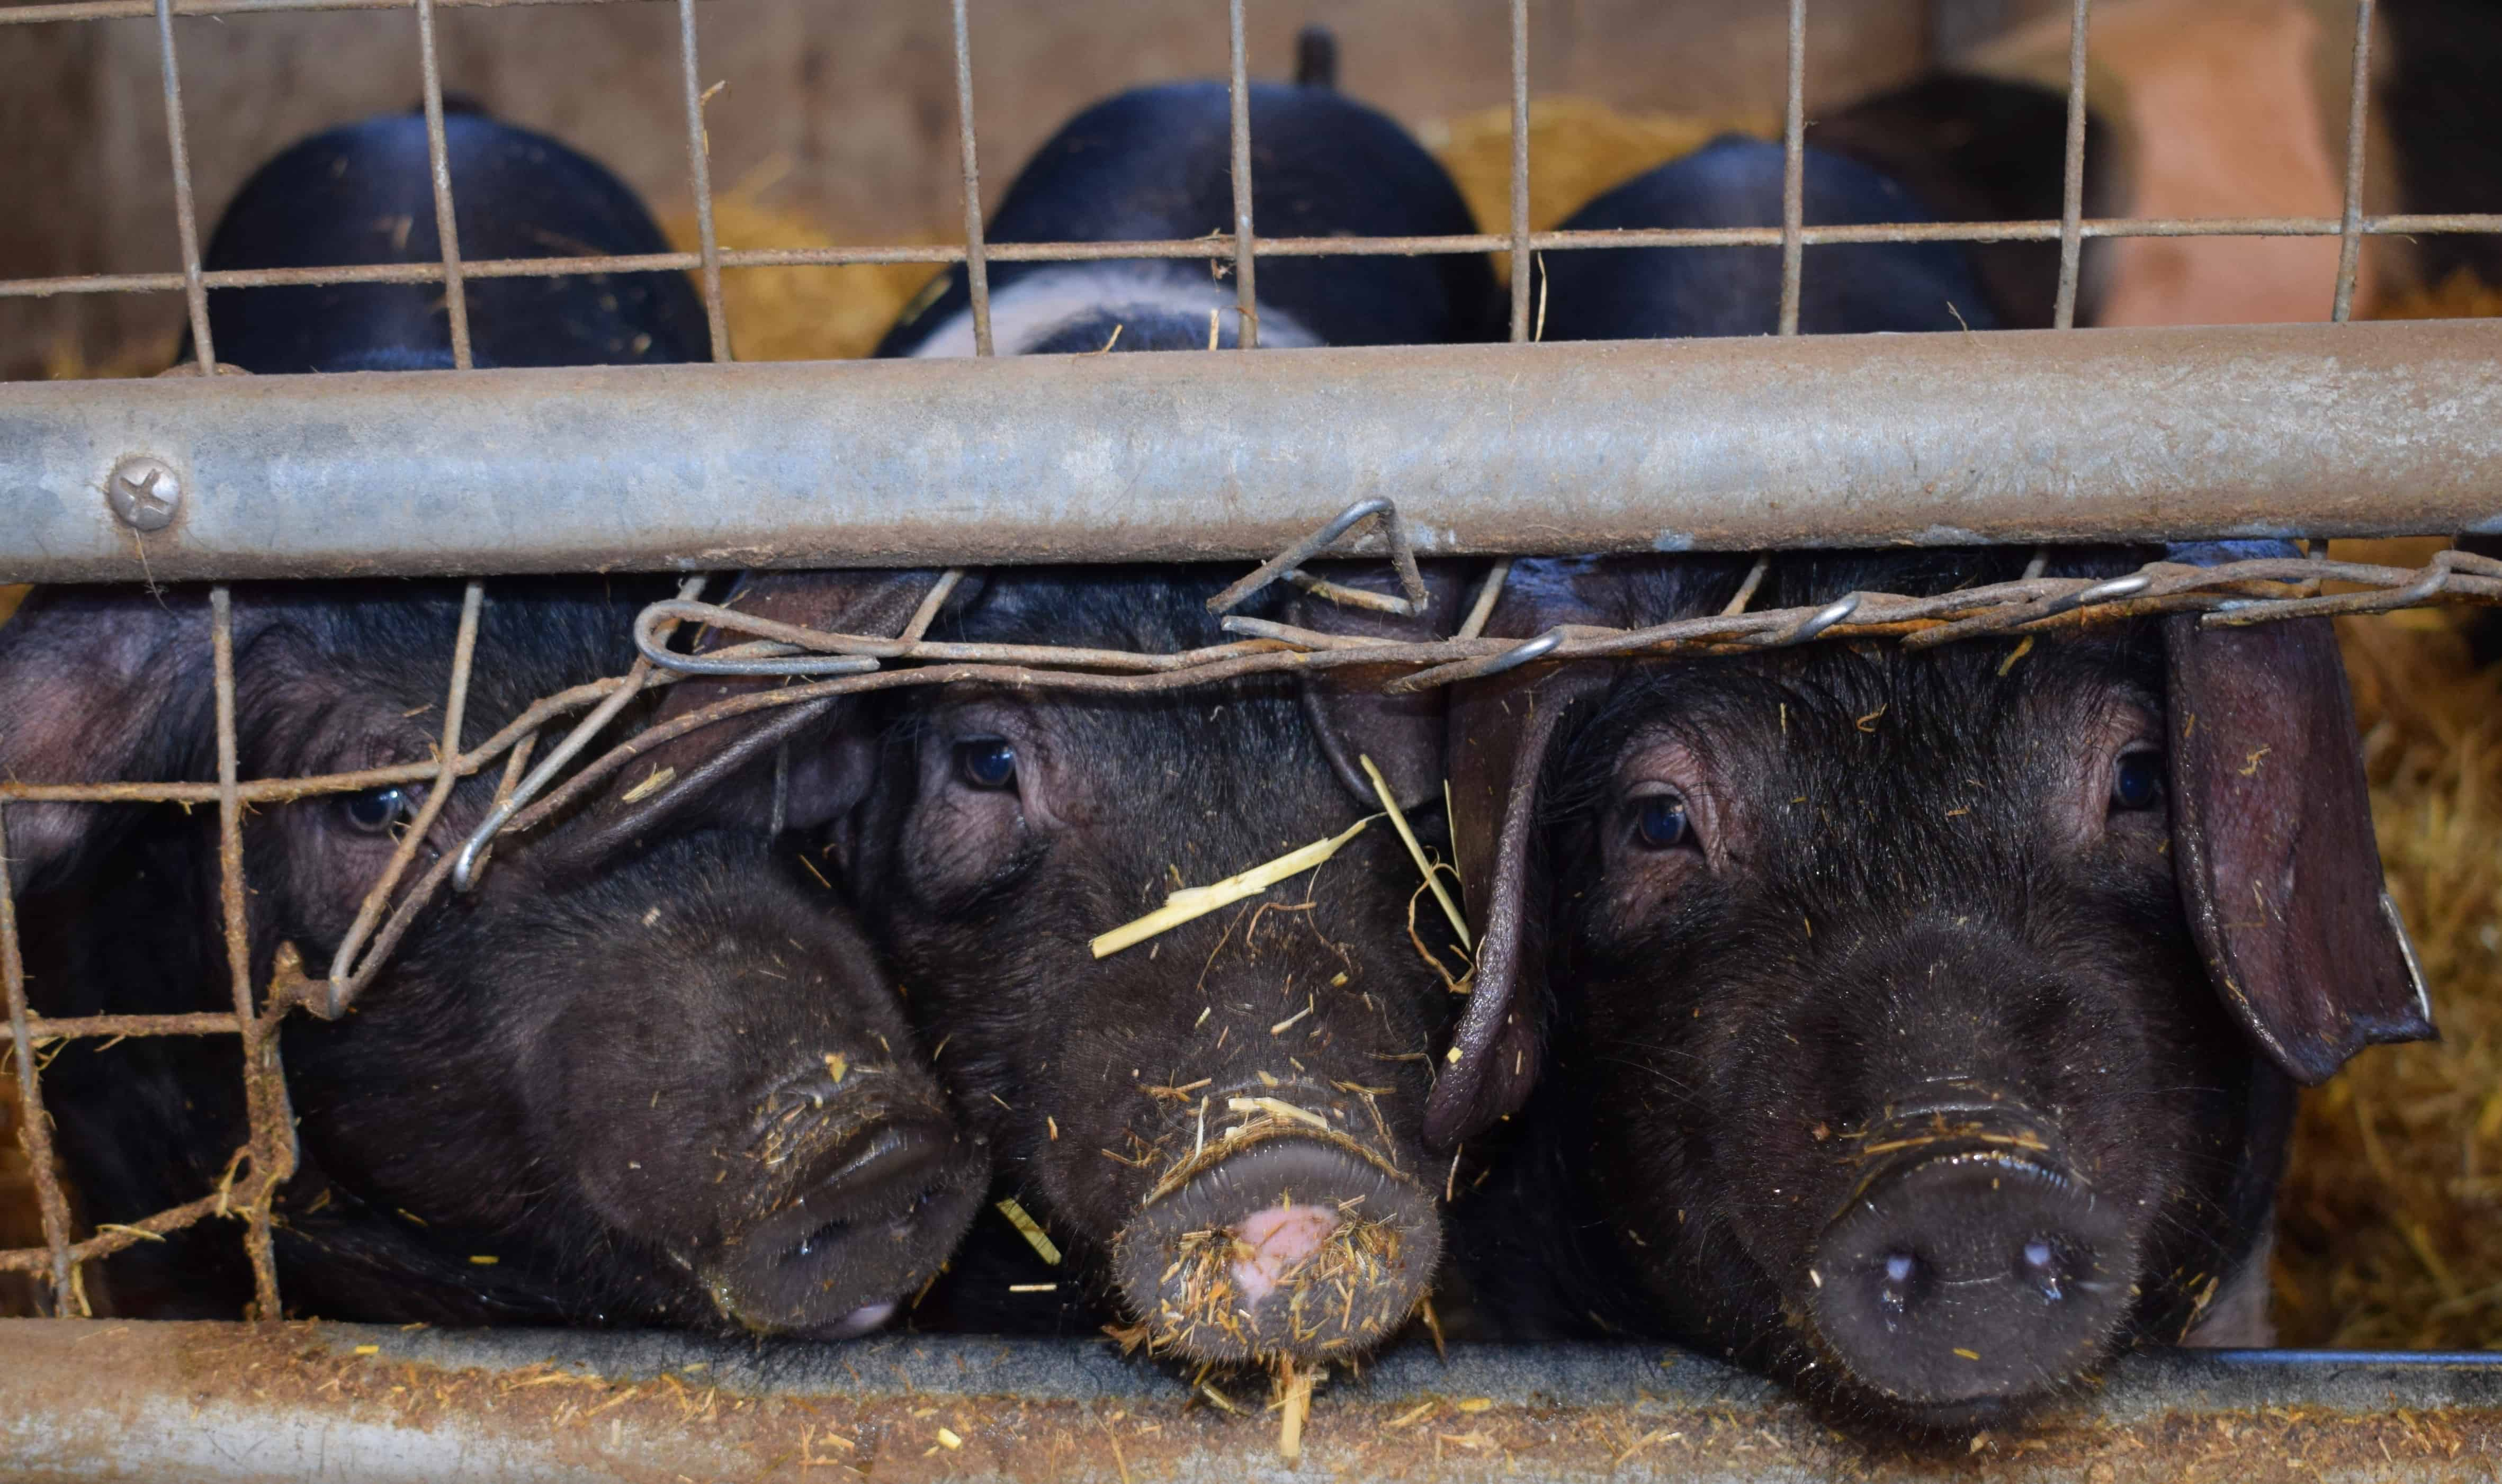 Weekly Digest: African swine fever continues global spread; HPV vaccine coverage expanded; Promising new Zika vaccine developed.